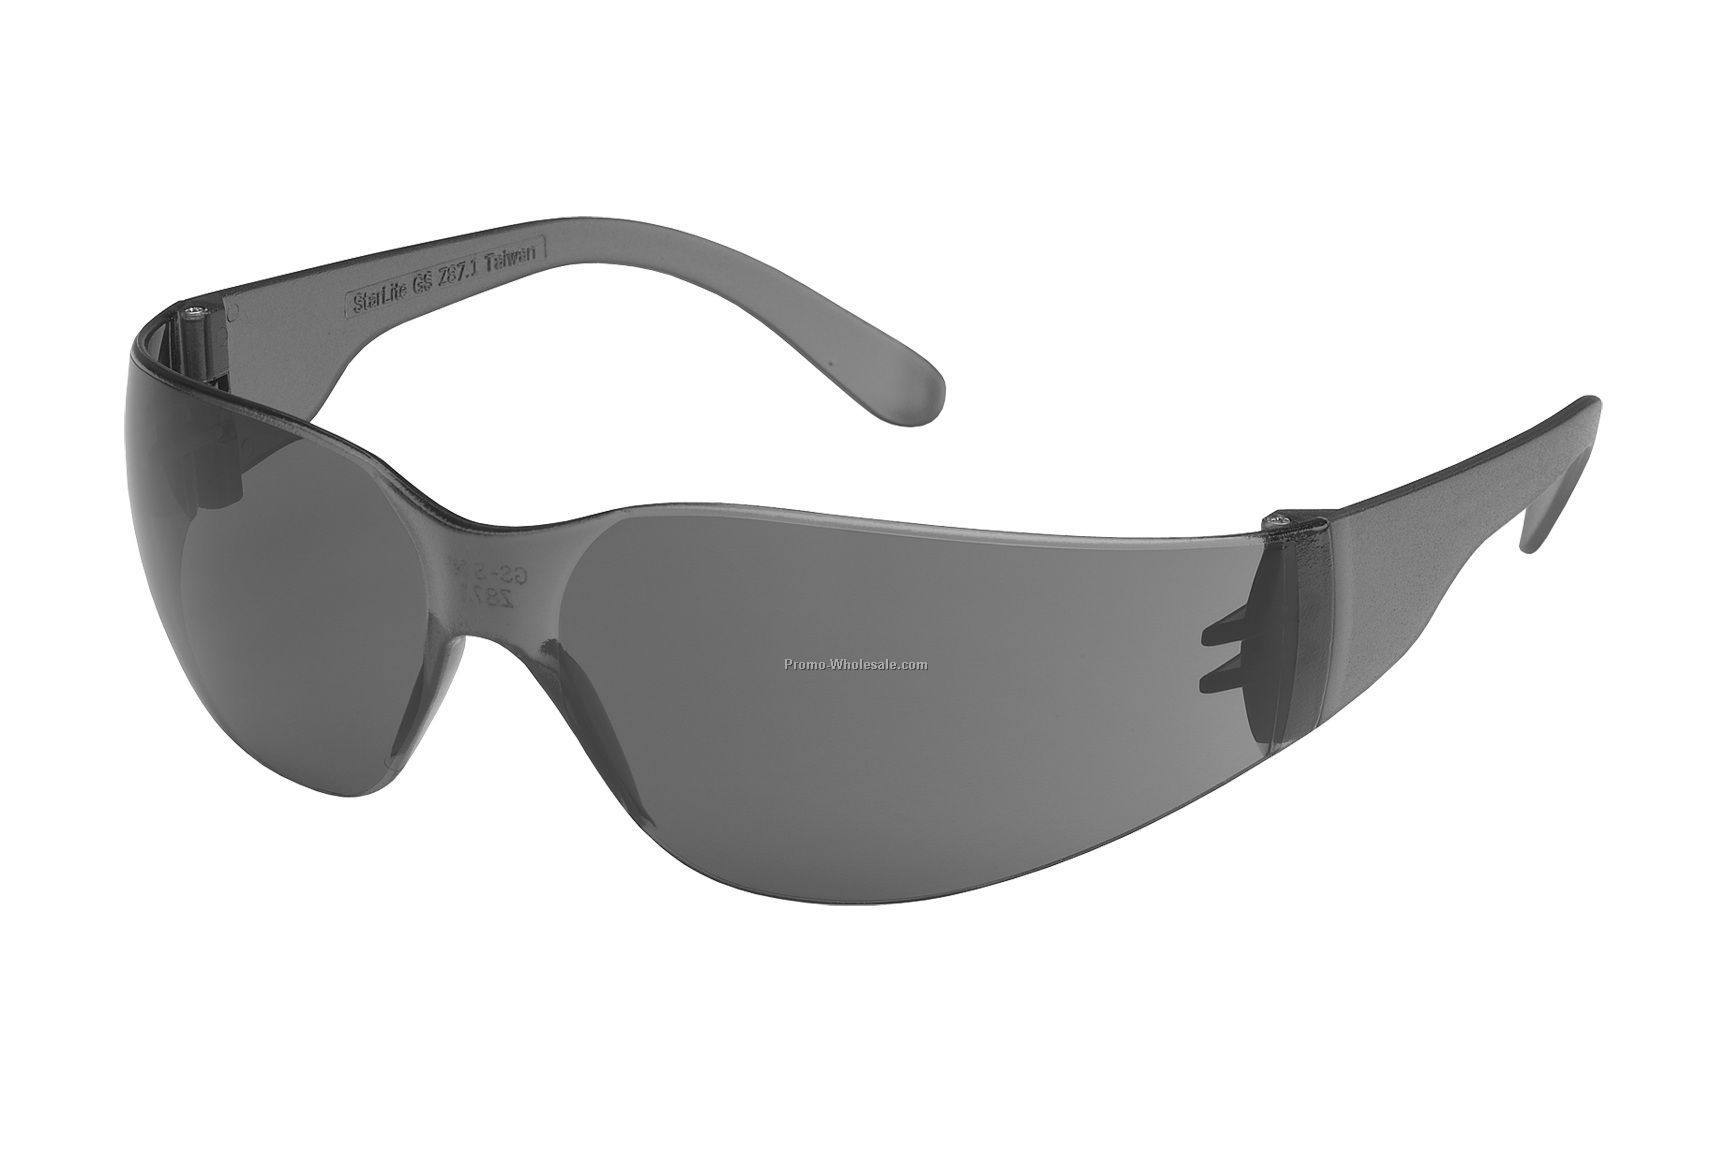 d258ec0aab Polarized Sunglasses Bad For Eyes